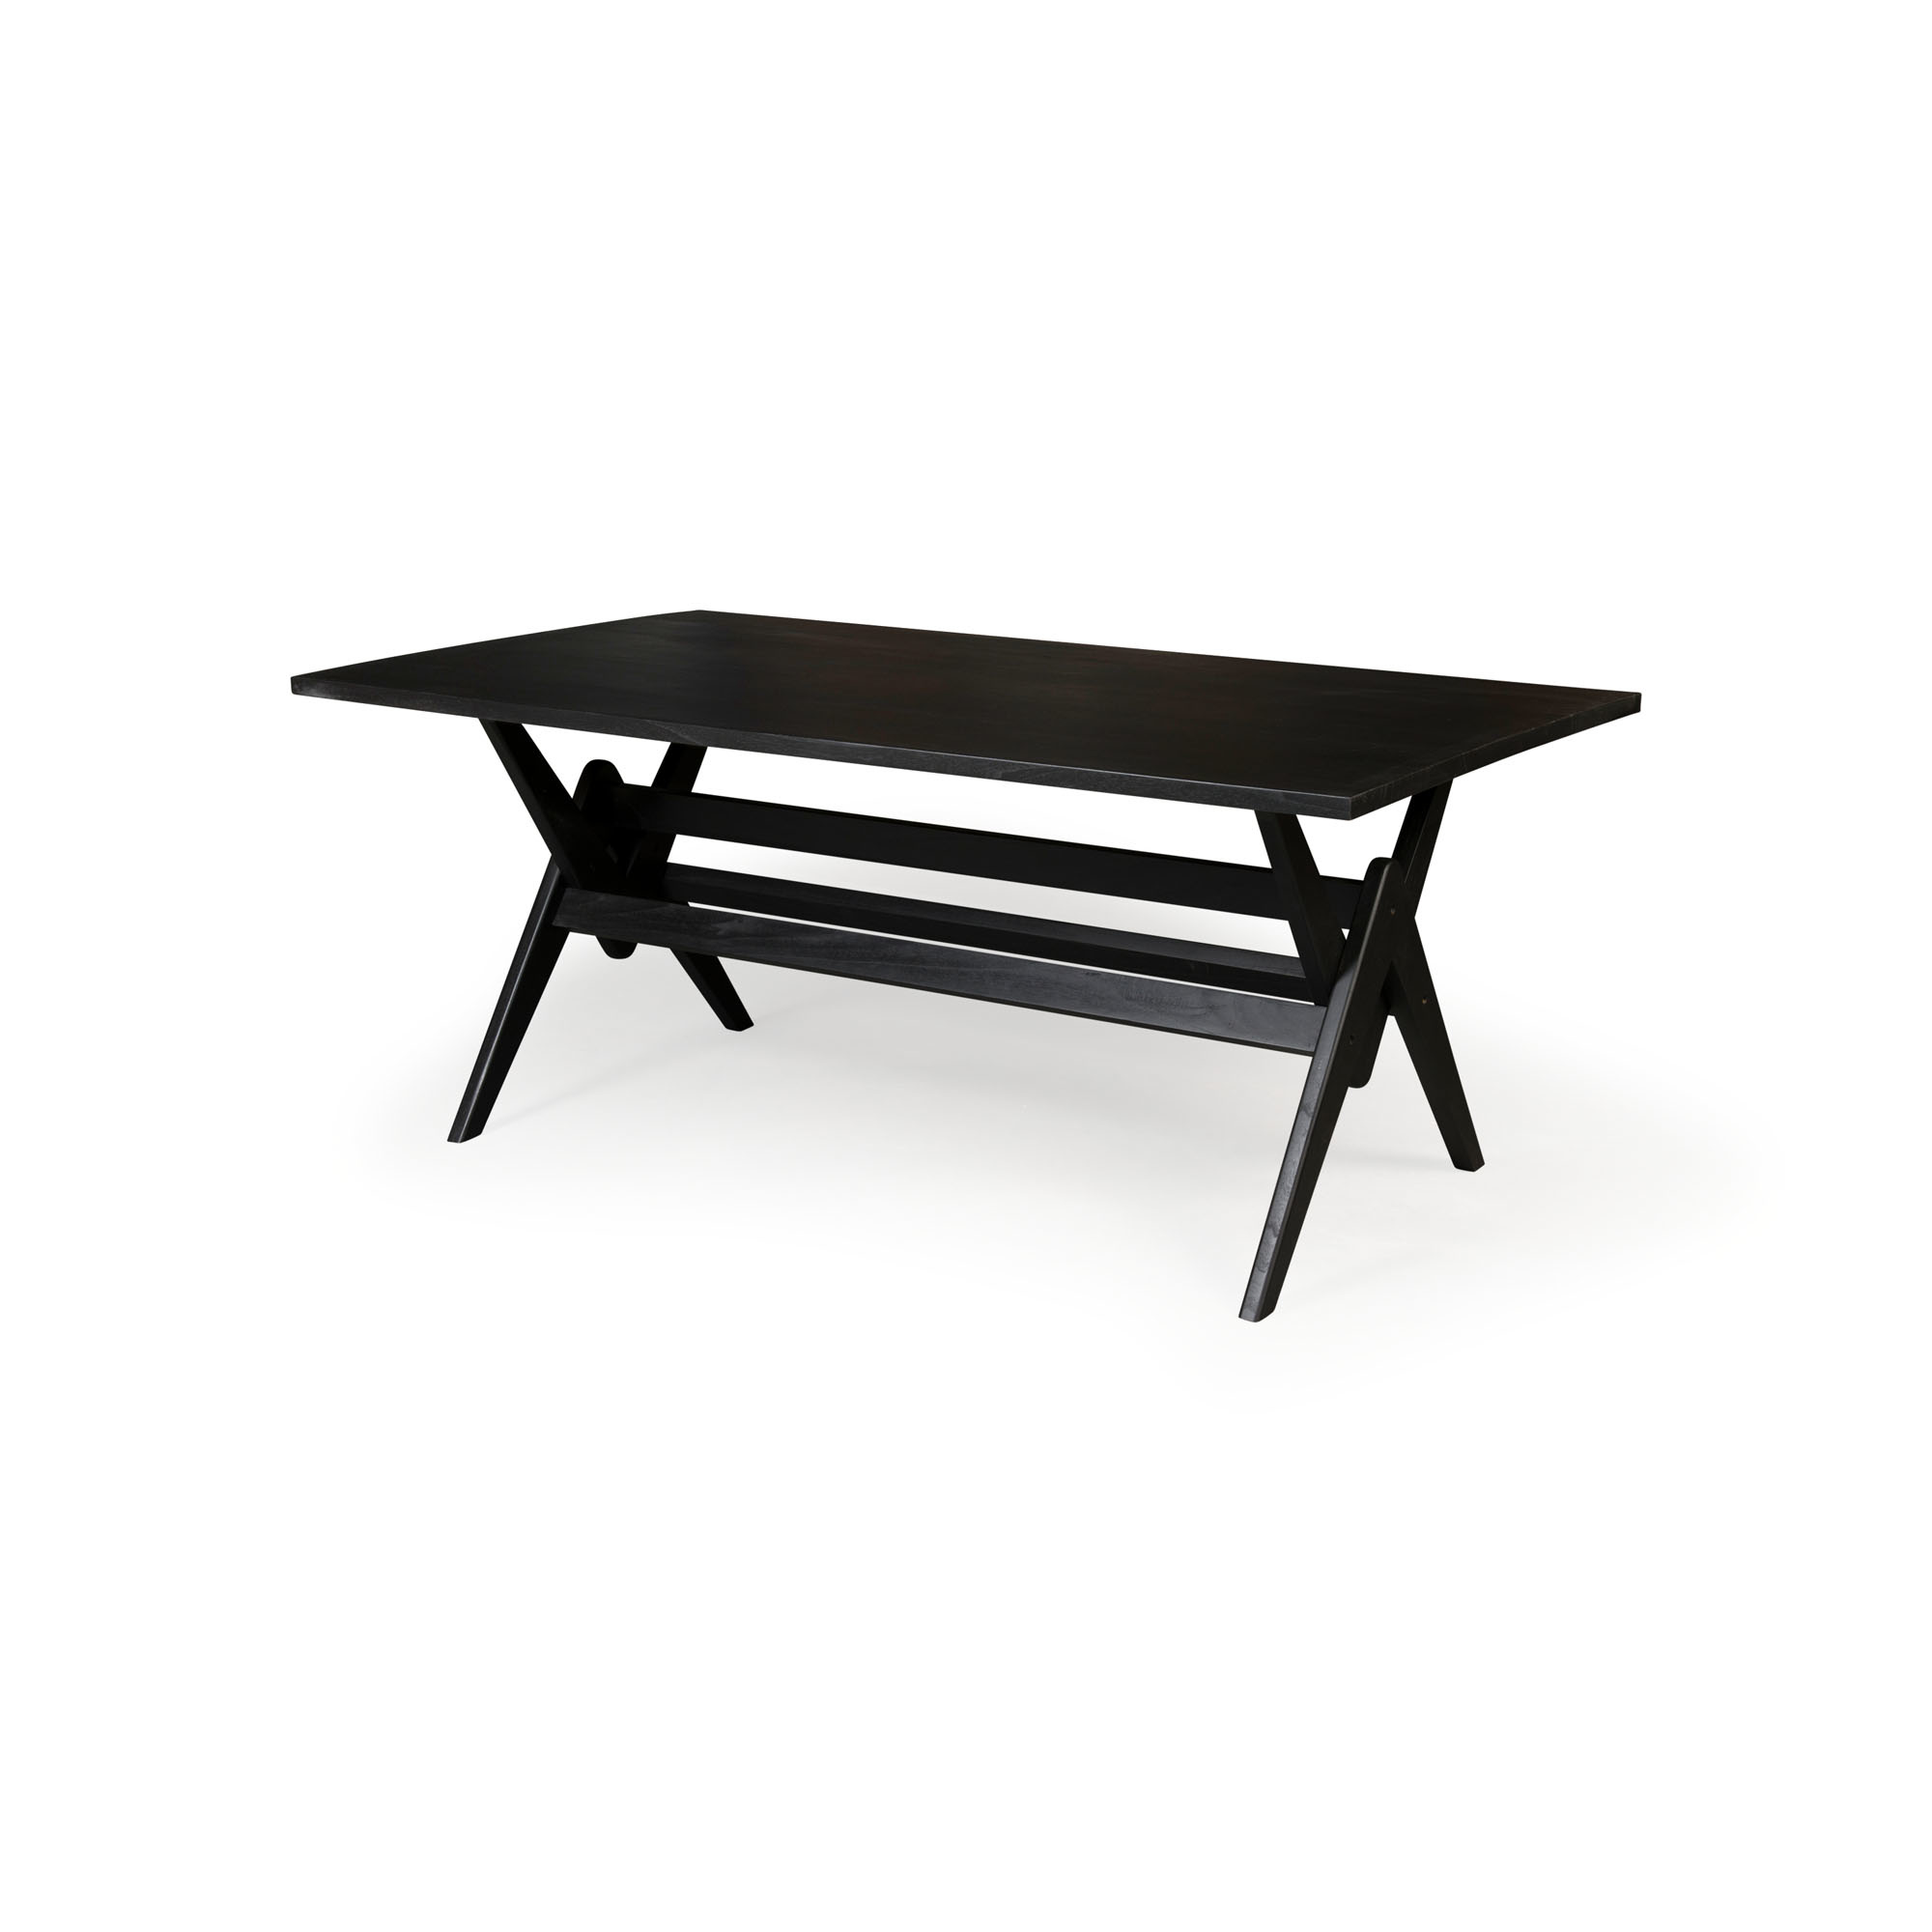 Dining Table W.T.H. 180 -  Charcoal Black-2